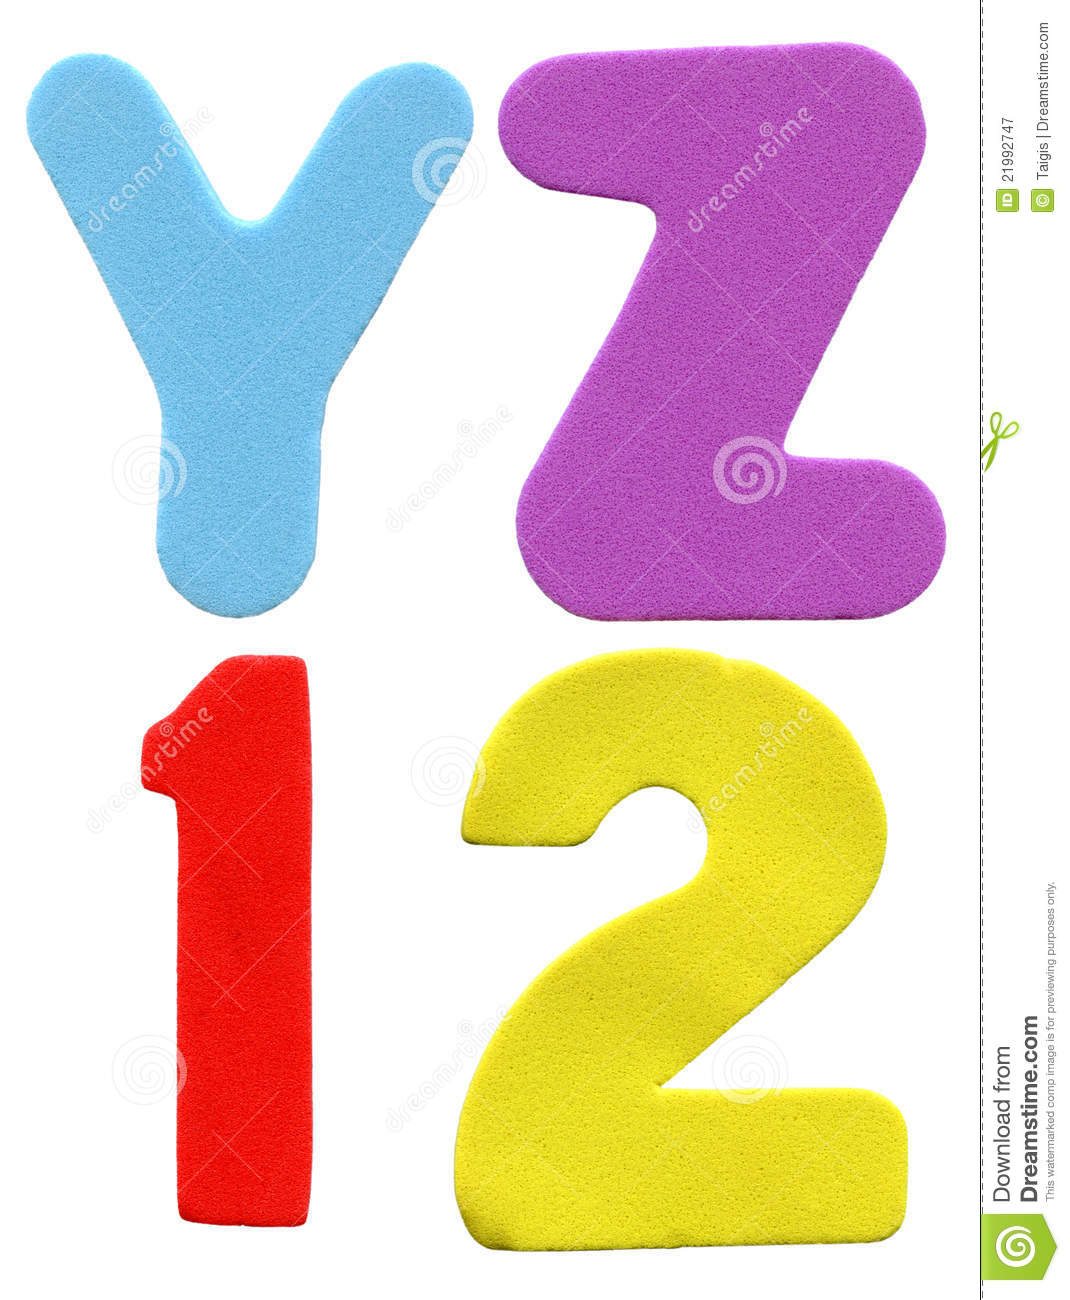 Colorful foam letters and numbers royalty free stock photography